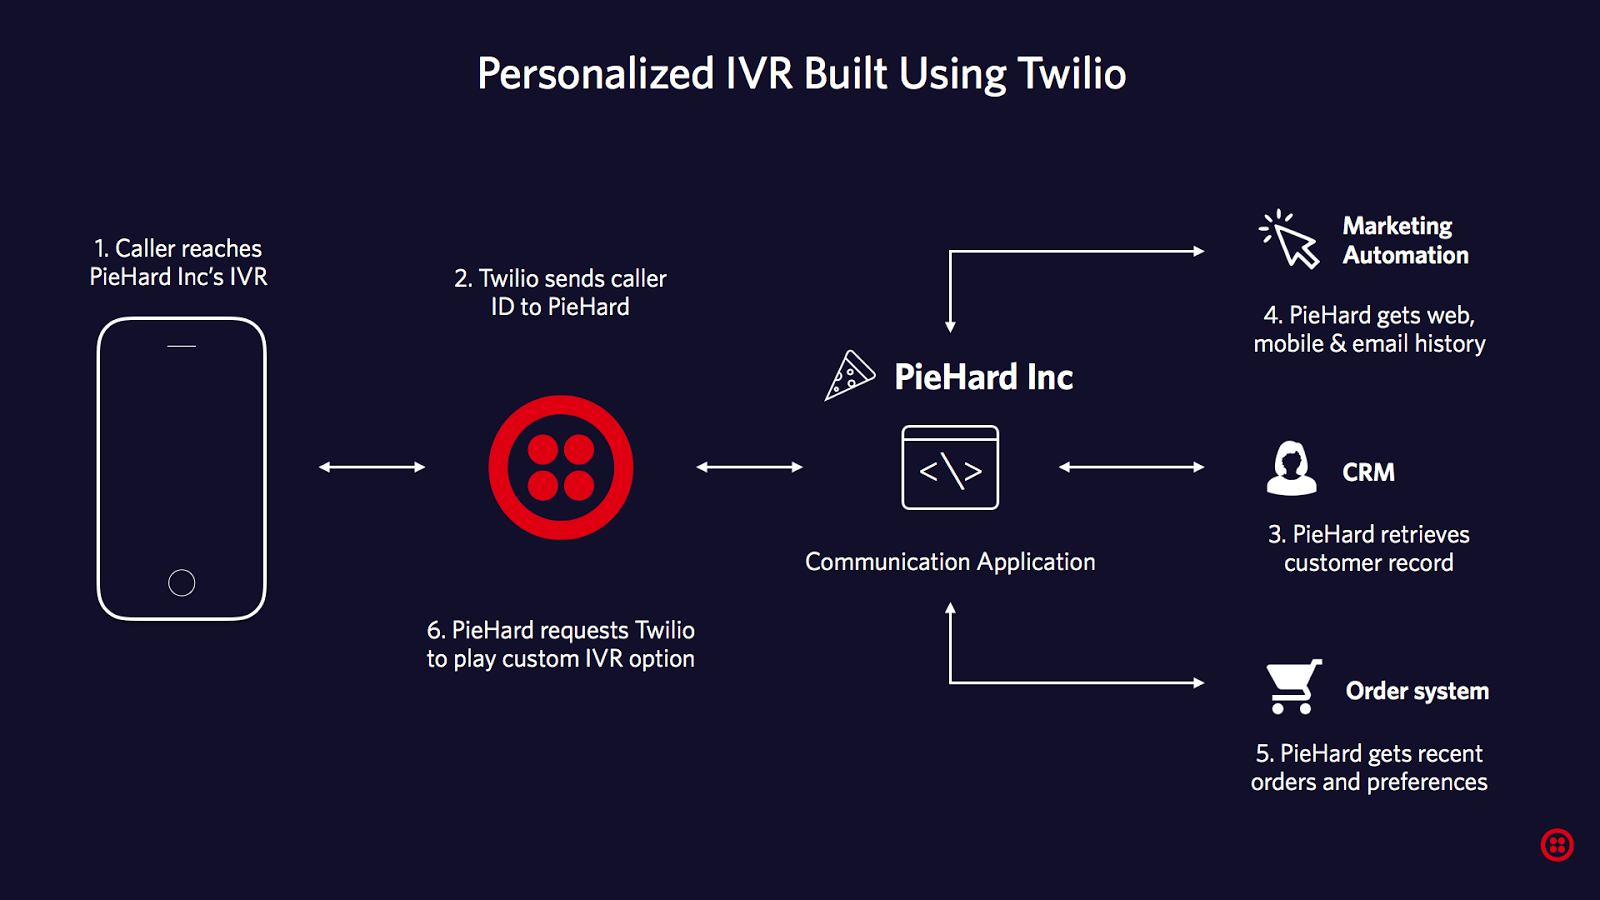 hight resolution of it all starts with reaching piehard inc s ivr built using twilio phone numbers and programmable voice apis twilio passes your caller id to the piehard